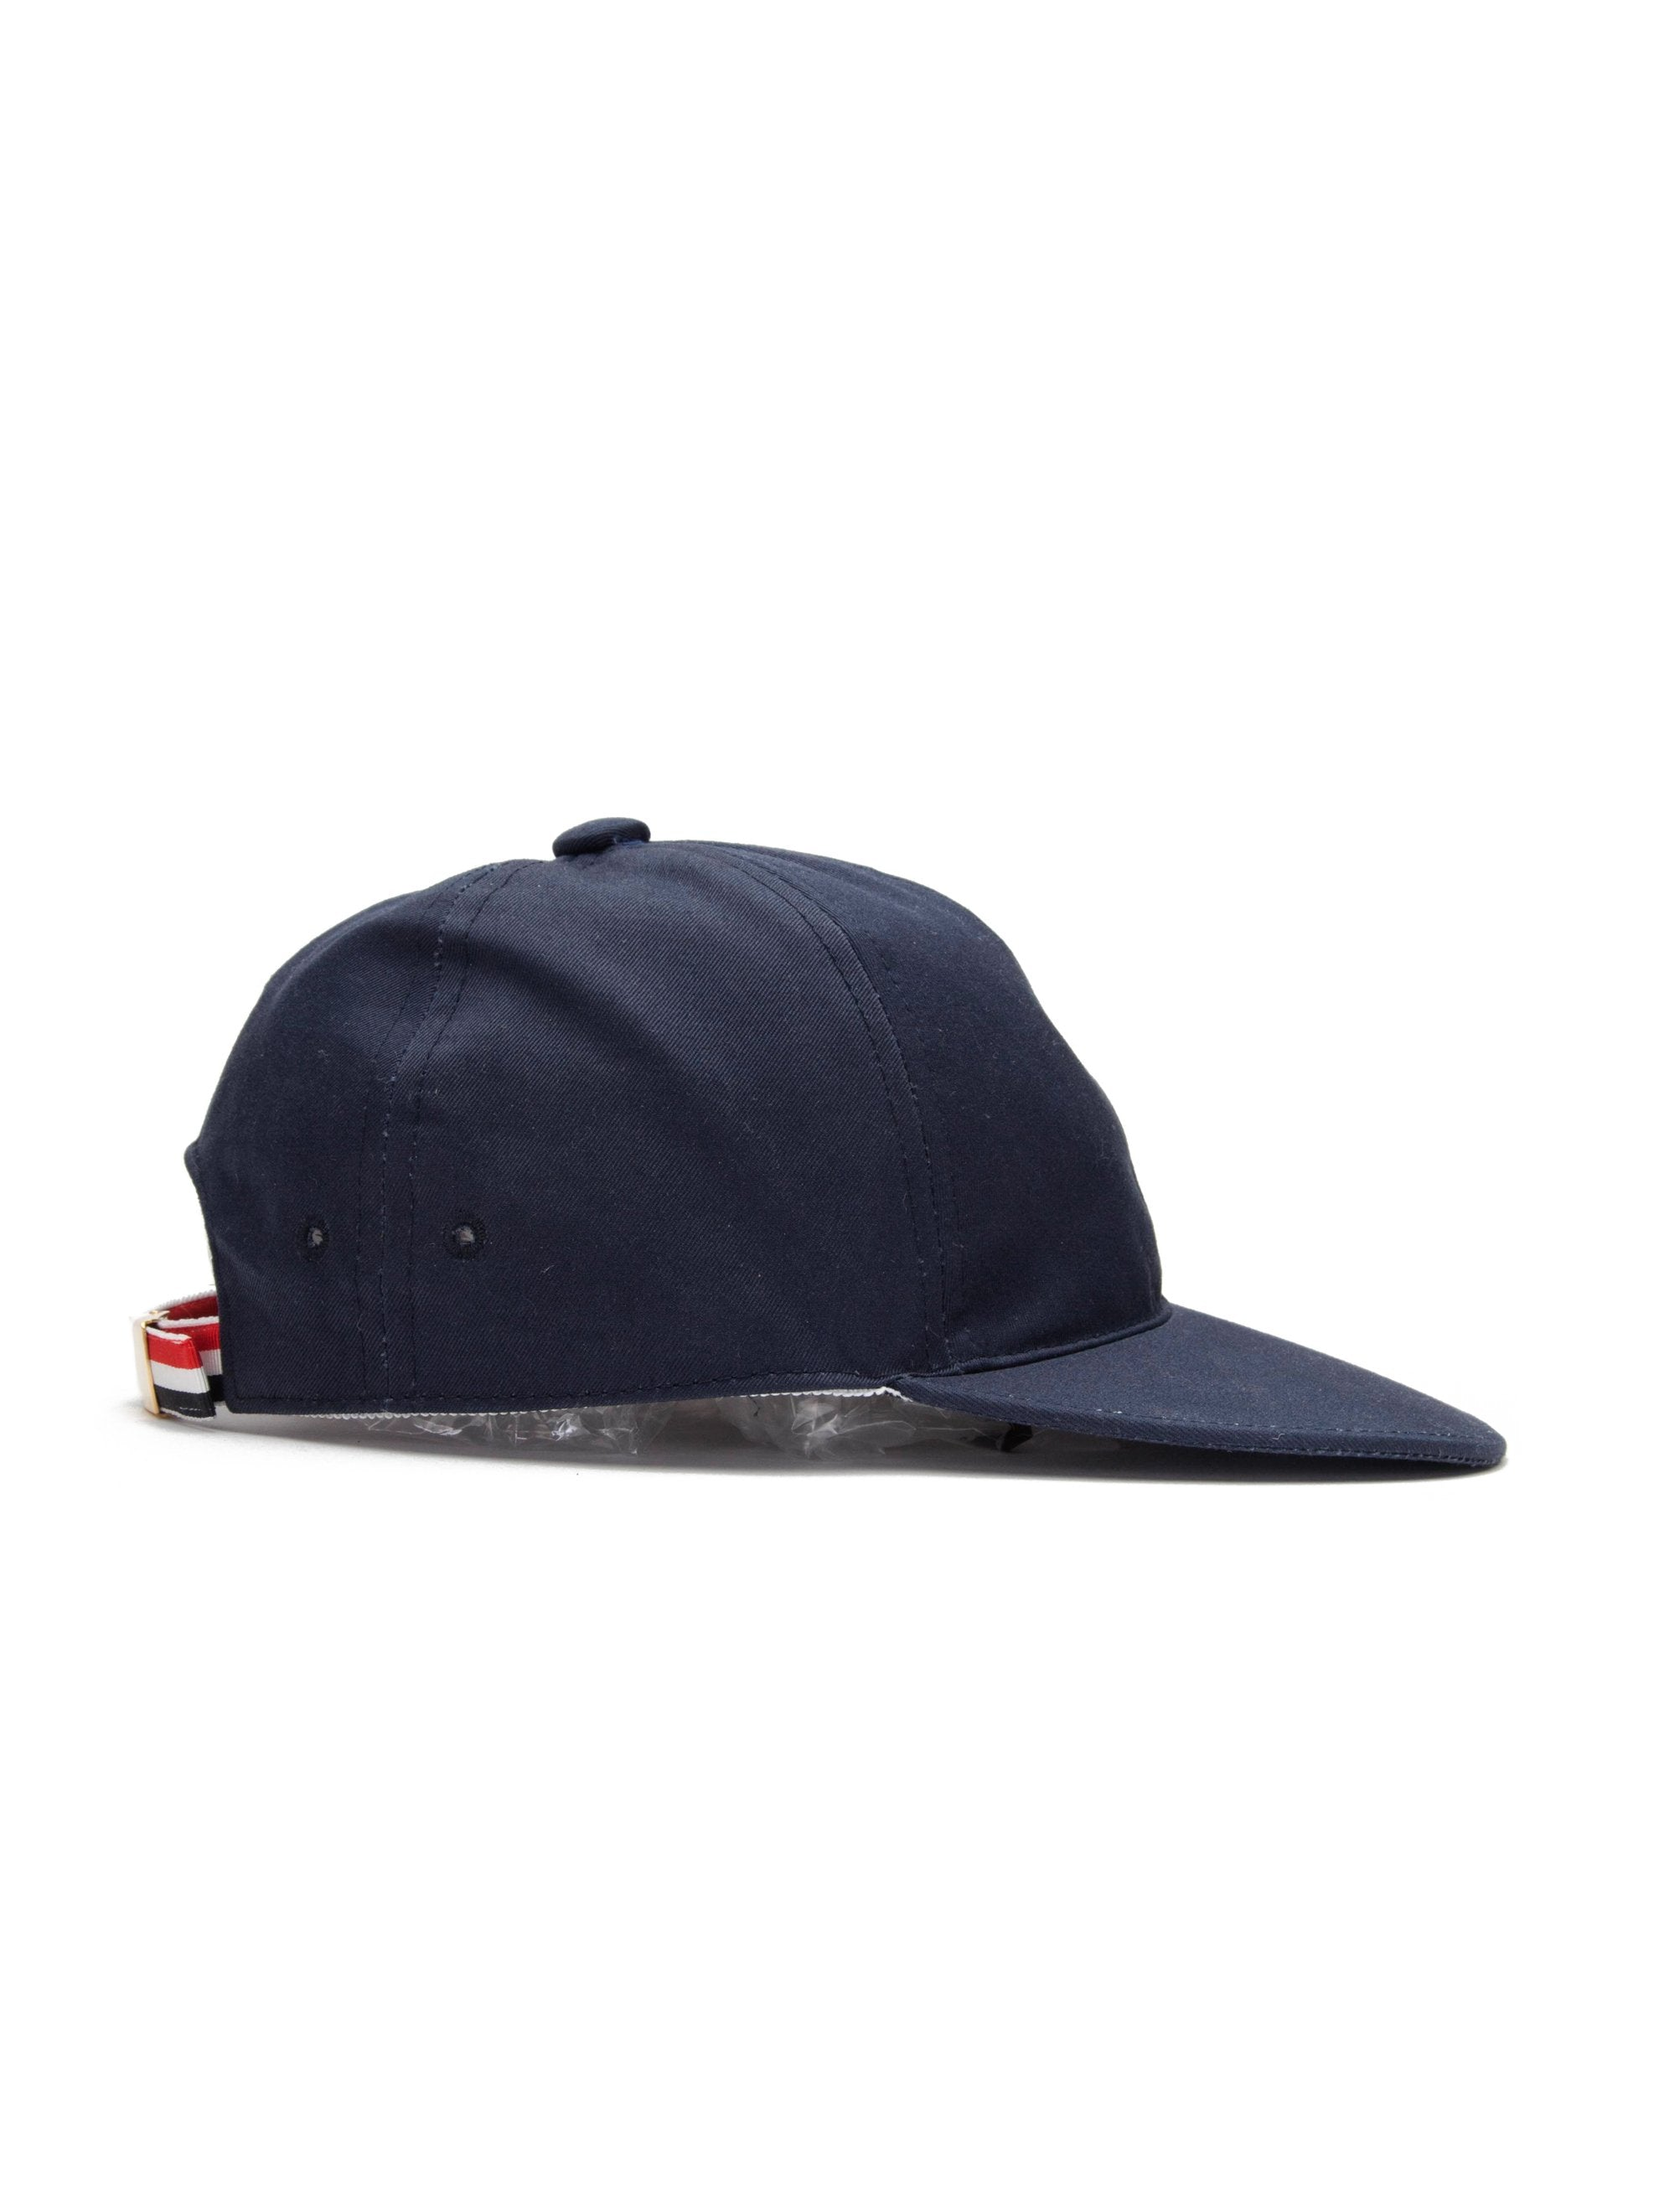 Navy 6-Panel Baseball Cap (RWB Seam Tape/Cotton Twill) 2